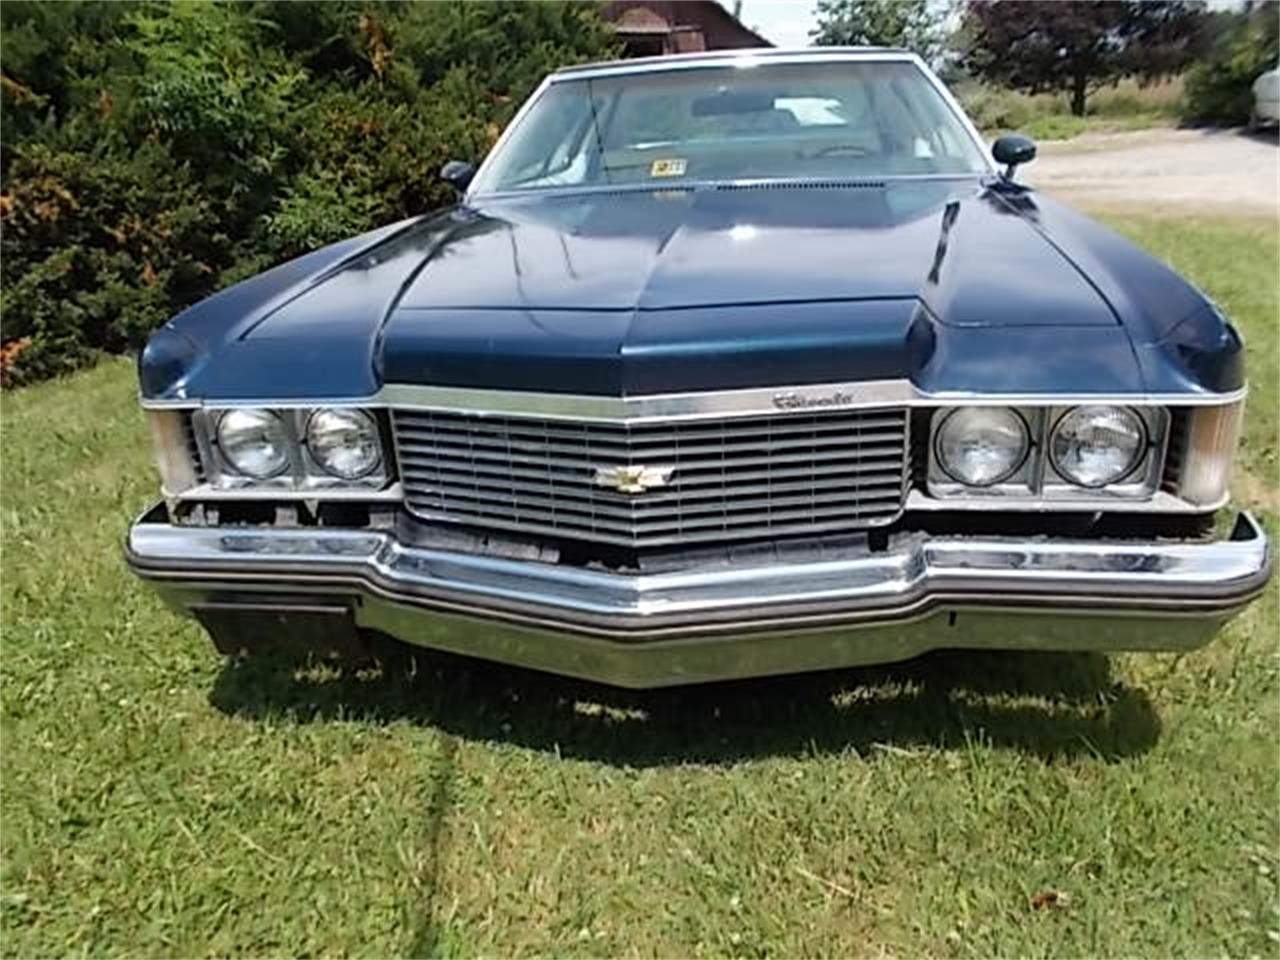 1974 Chevrolet Impala for sale in Creston, OH – photo 22